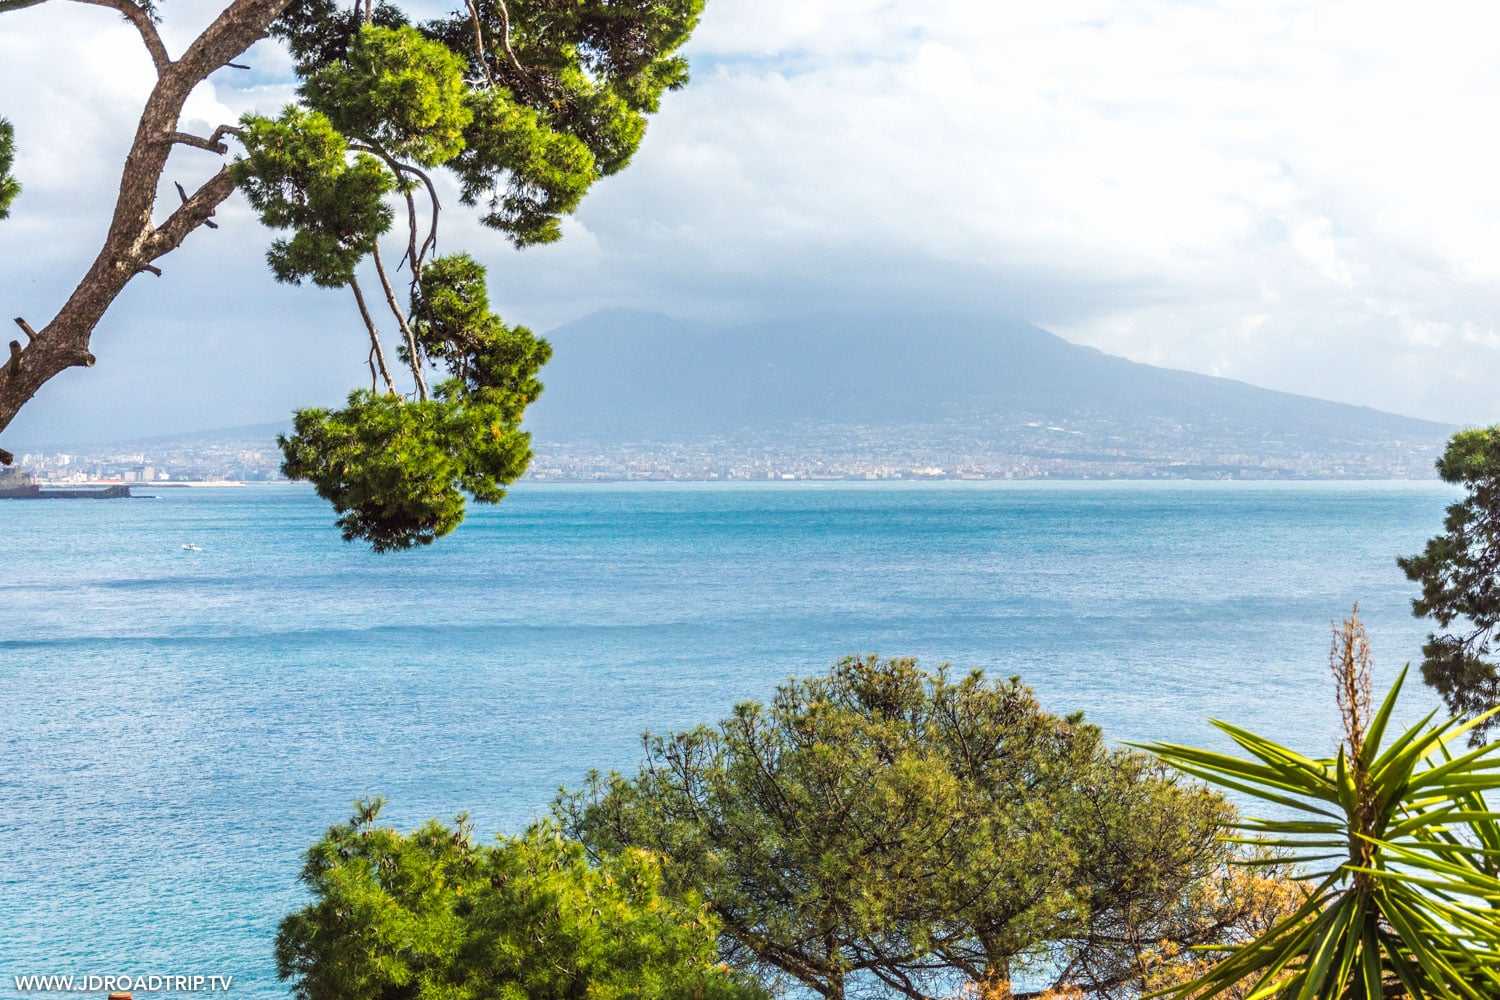 Visiter Naples en 6 jours - Hop on Hop off